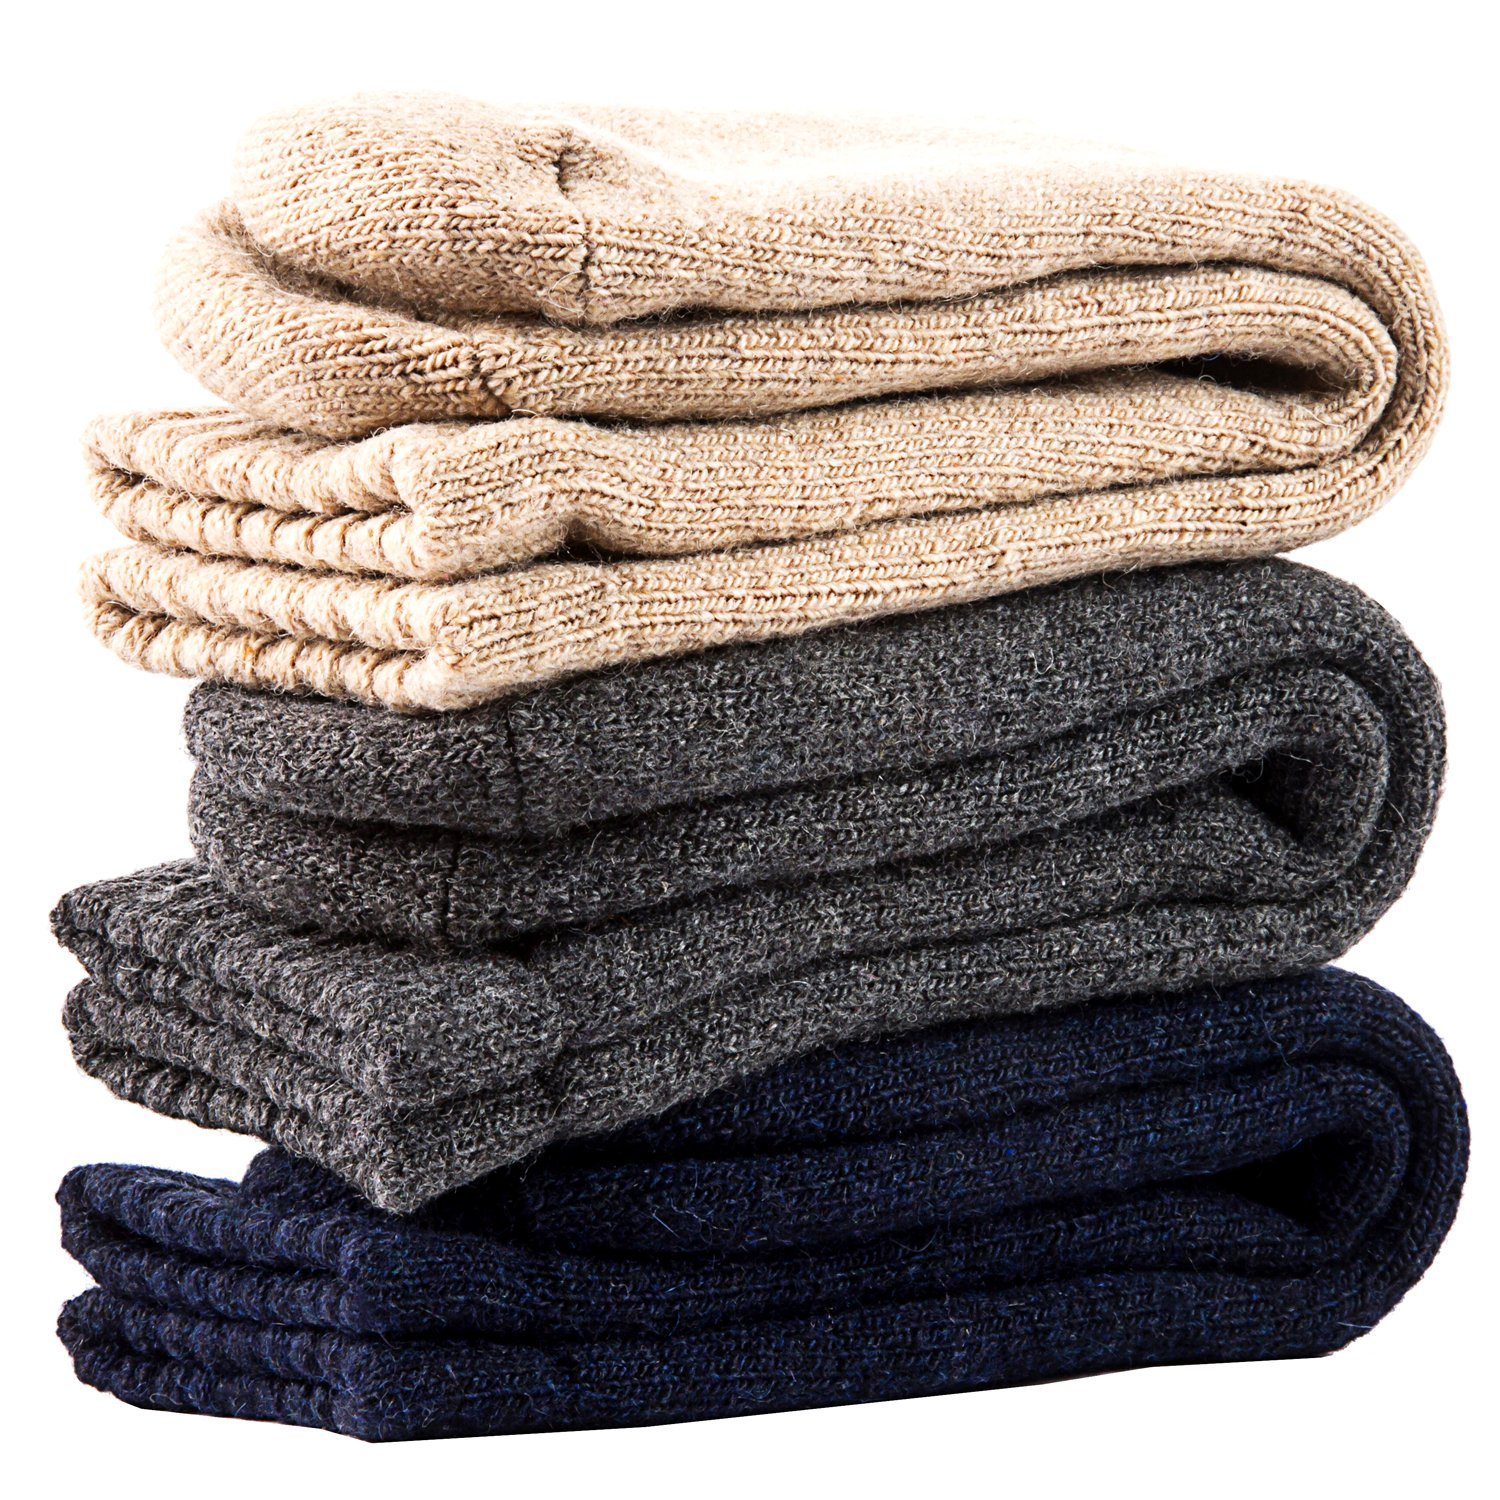 Lian LifeStyle Mens 4 Pairs Extra Thick Wool Socks Solid Size 7-11